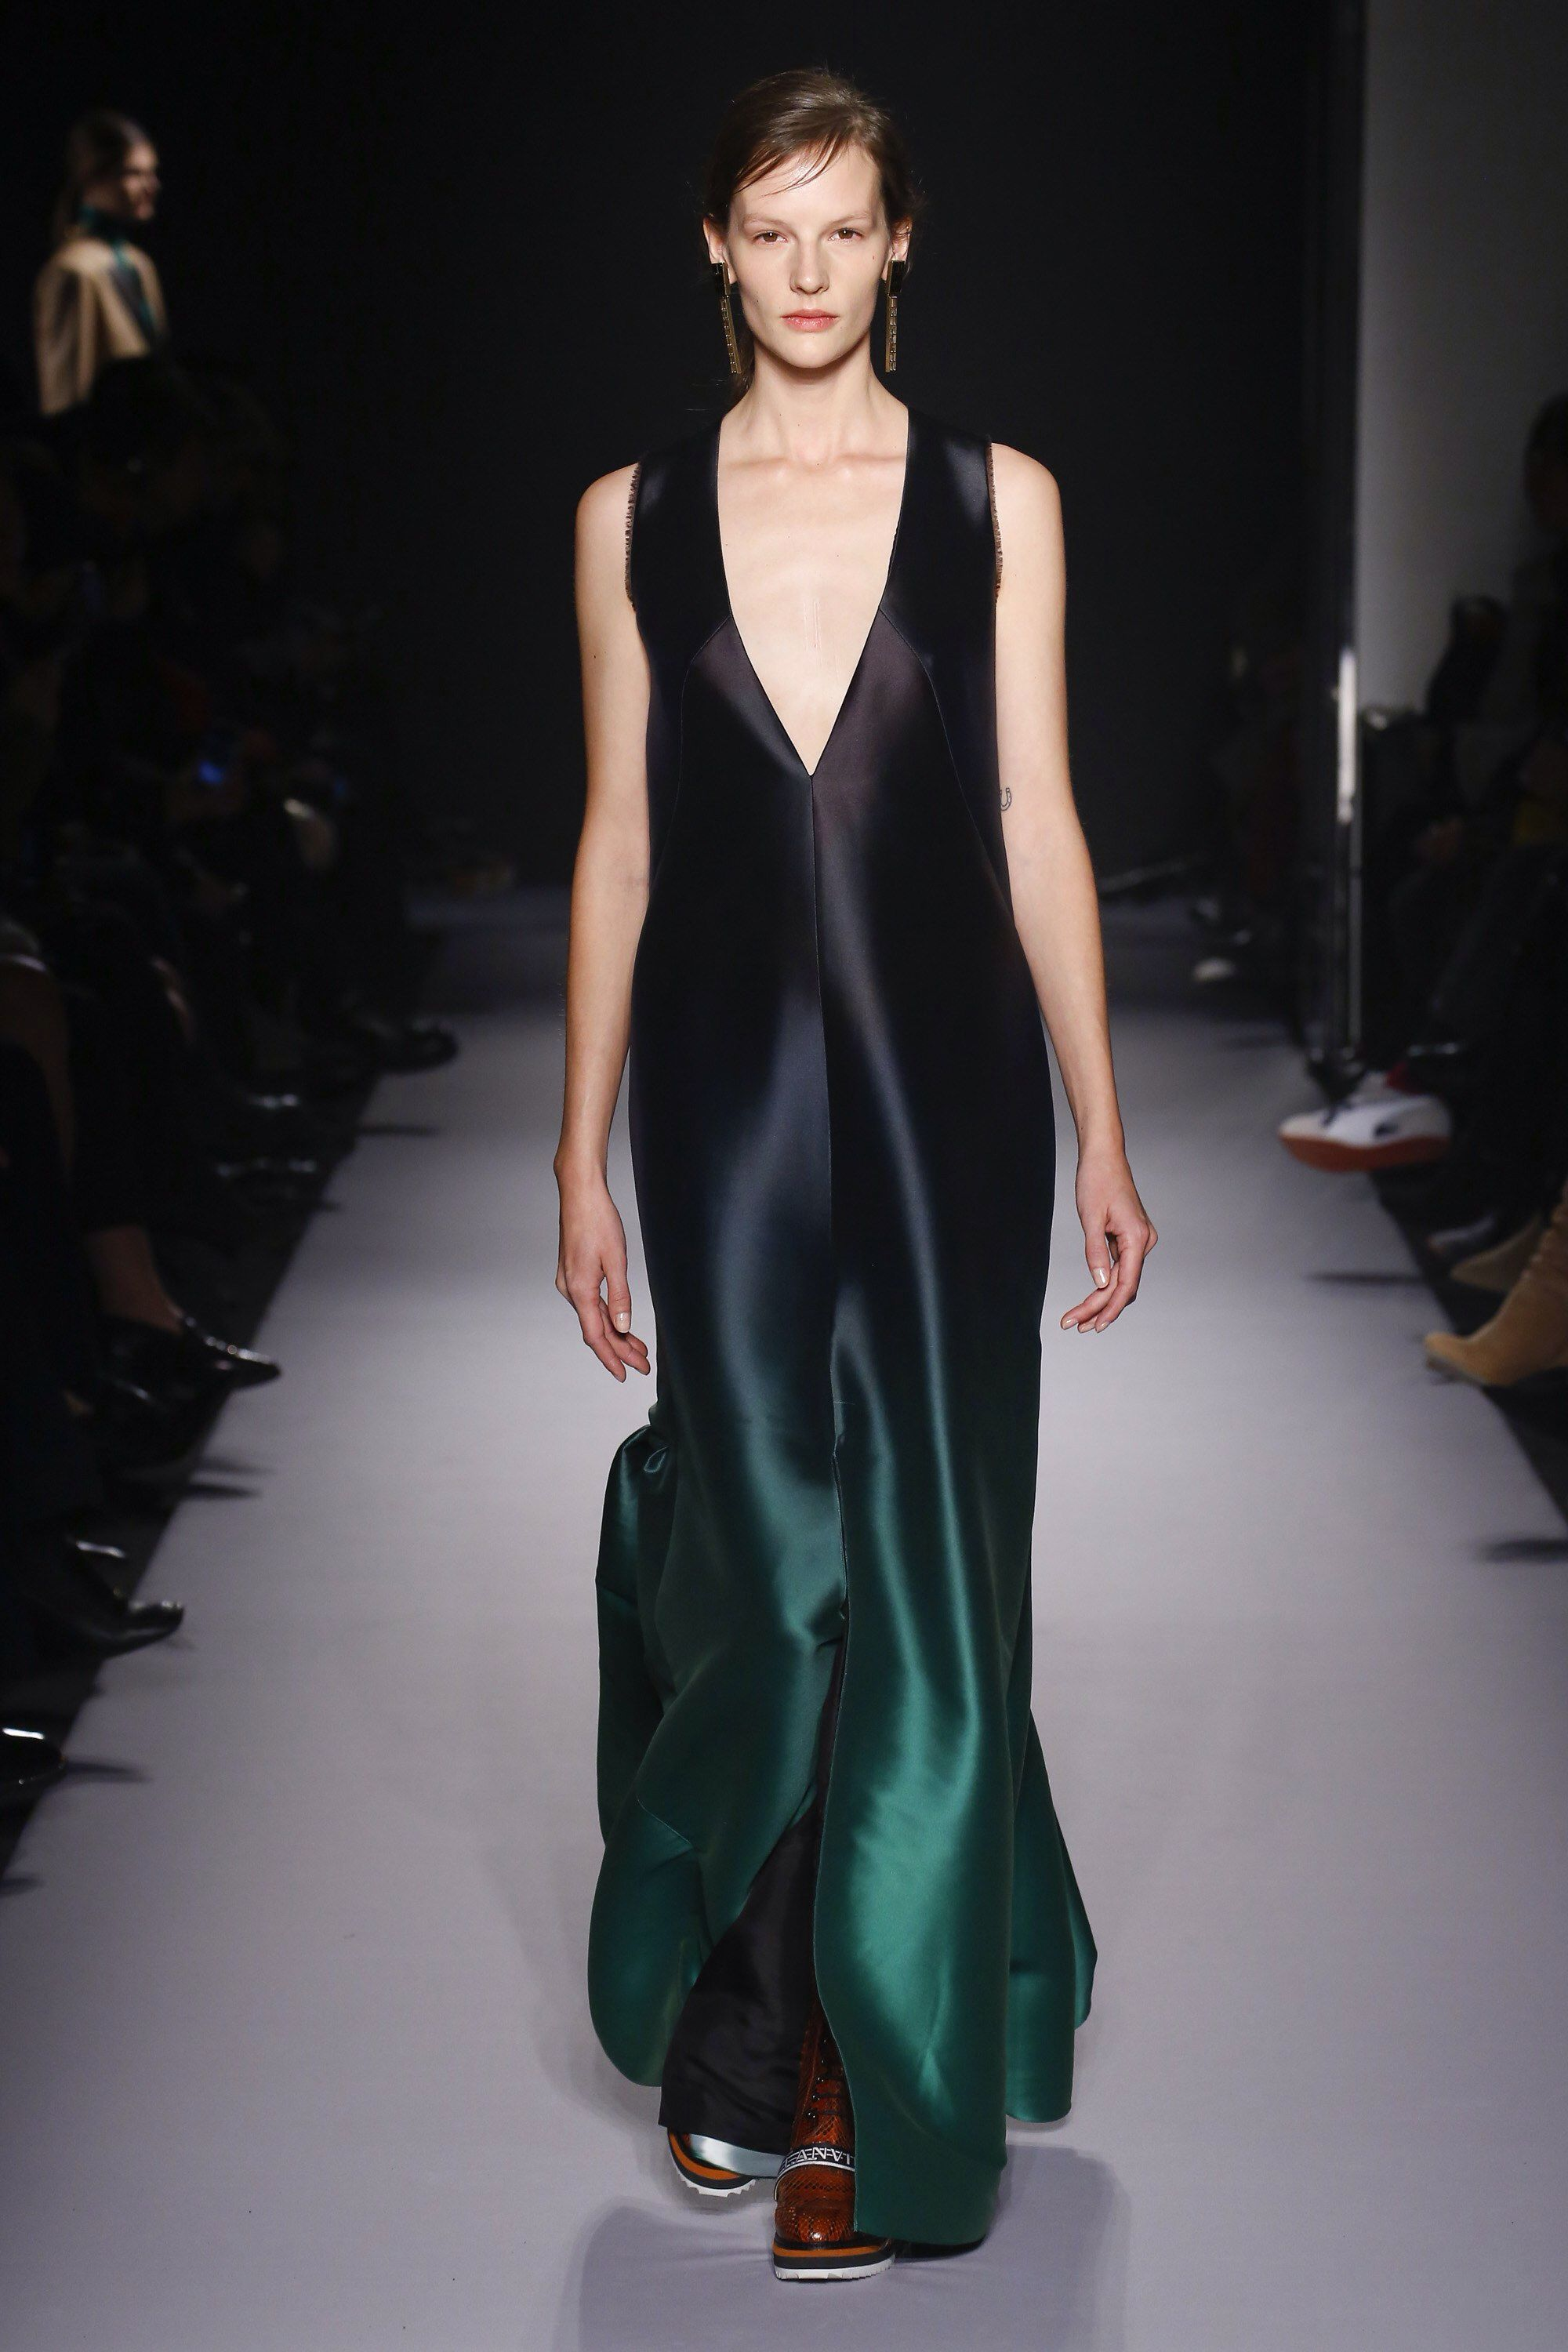 Lanvin fall readytowear fashion show collection models and